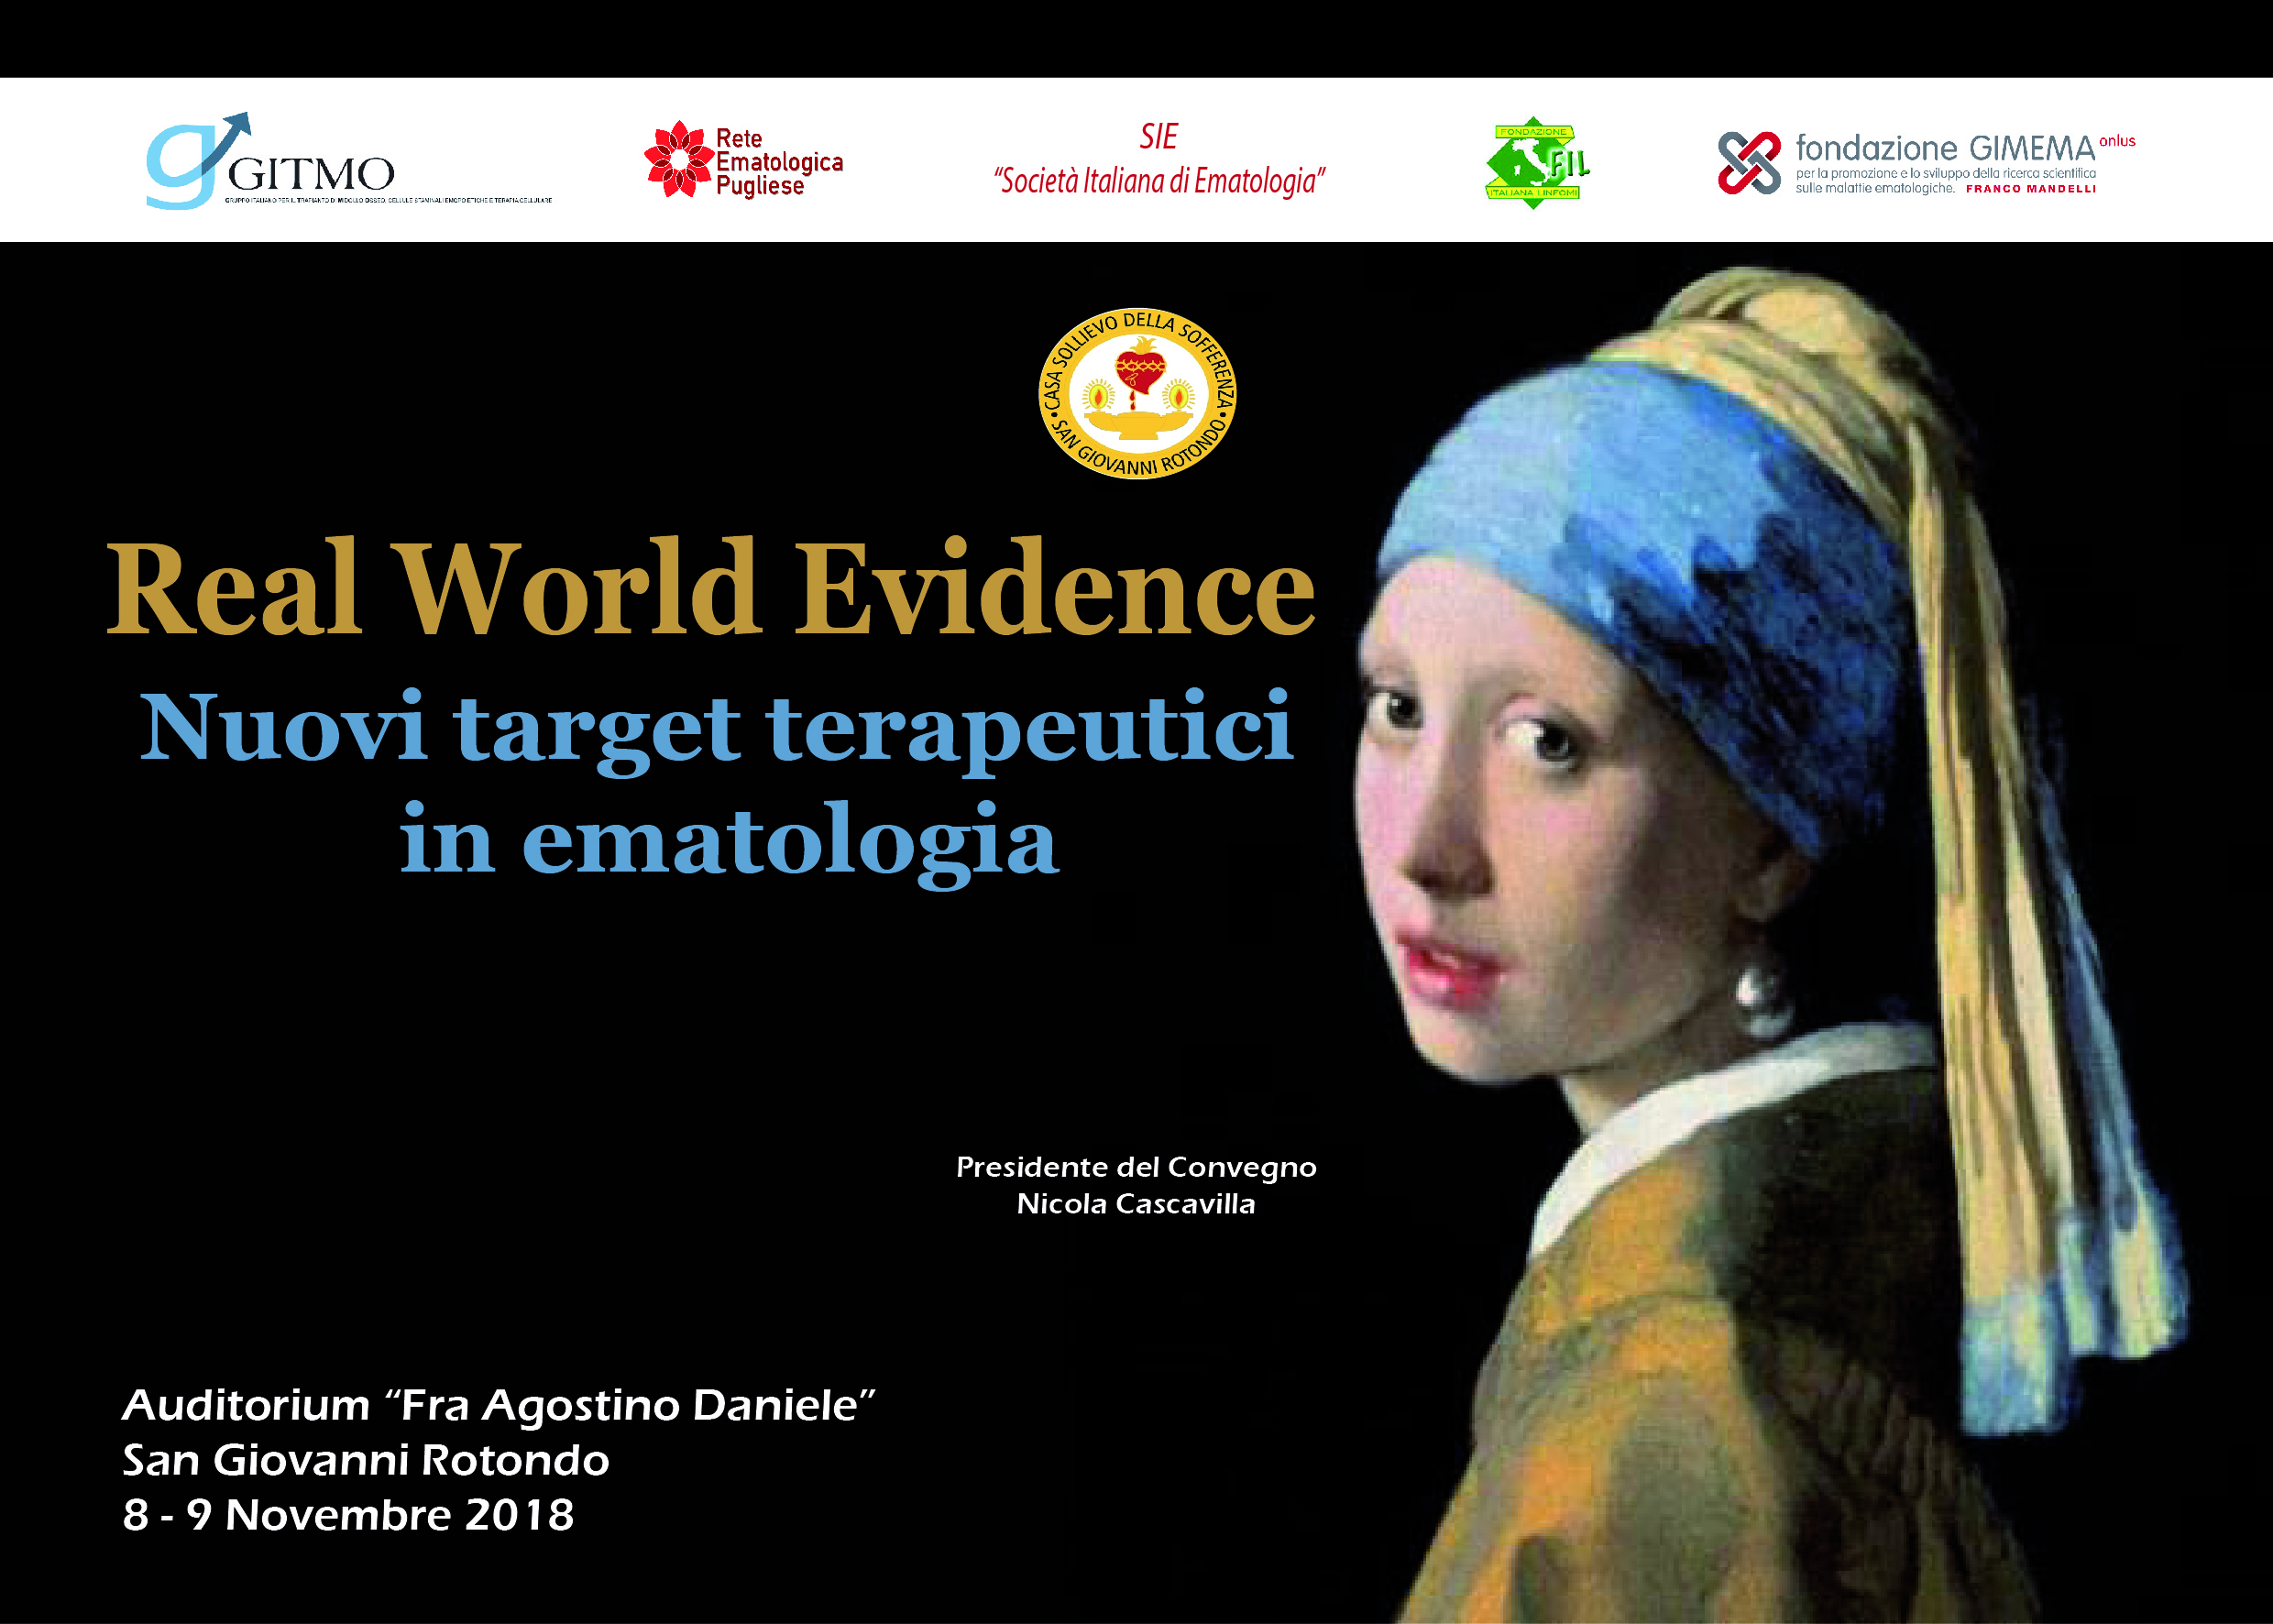 REAL WORLD EVIDENCE: NUOVI TARGET TERAPEUTICI IN EMATOLOGIA